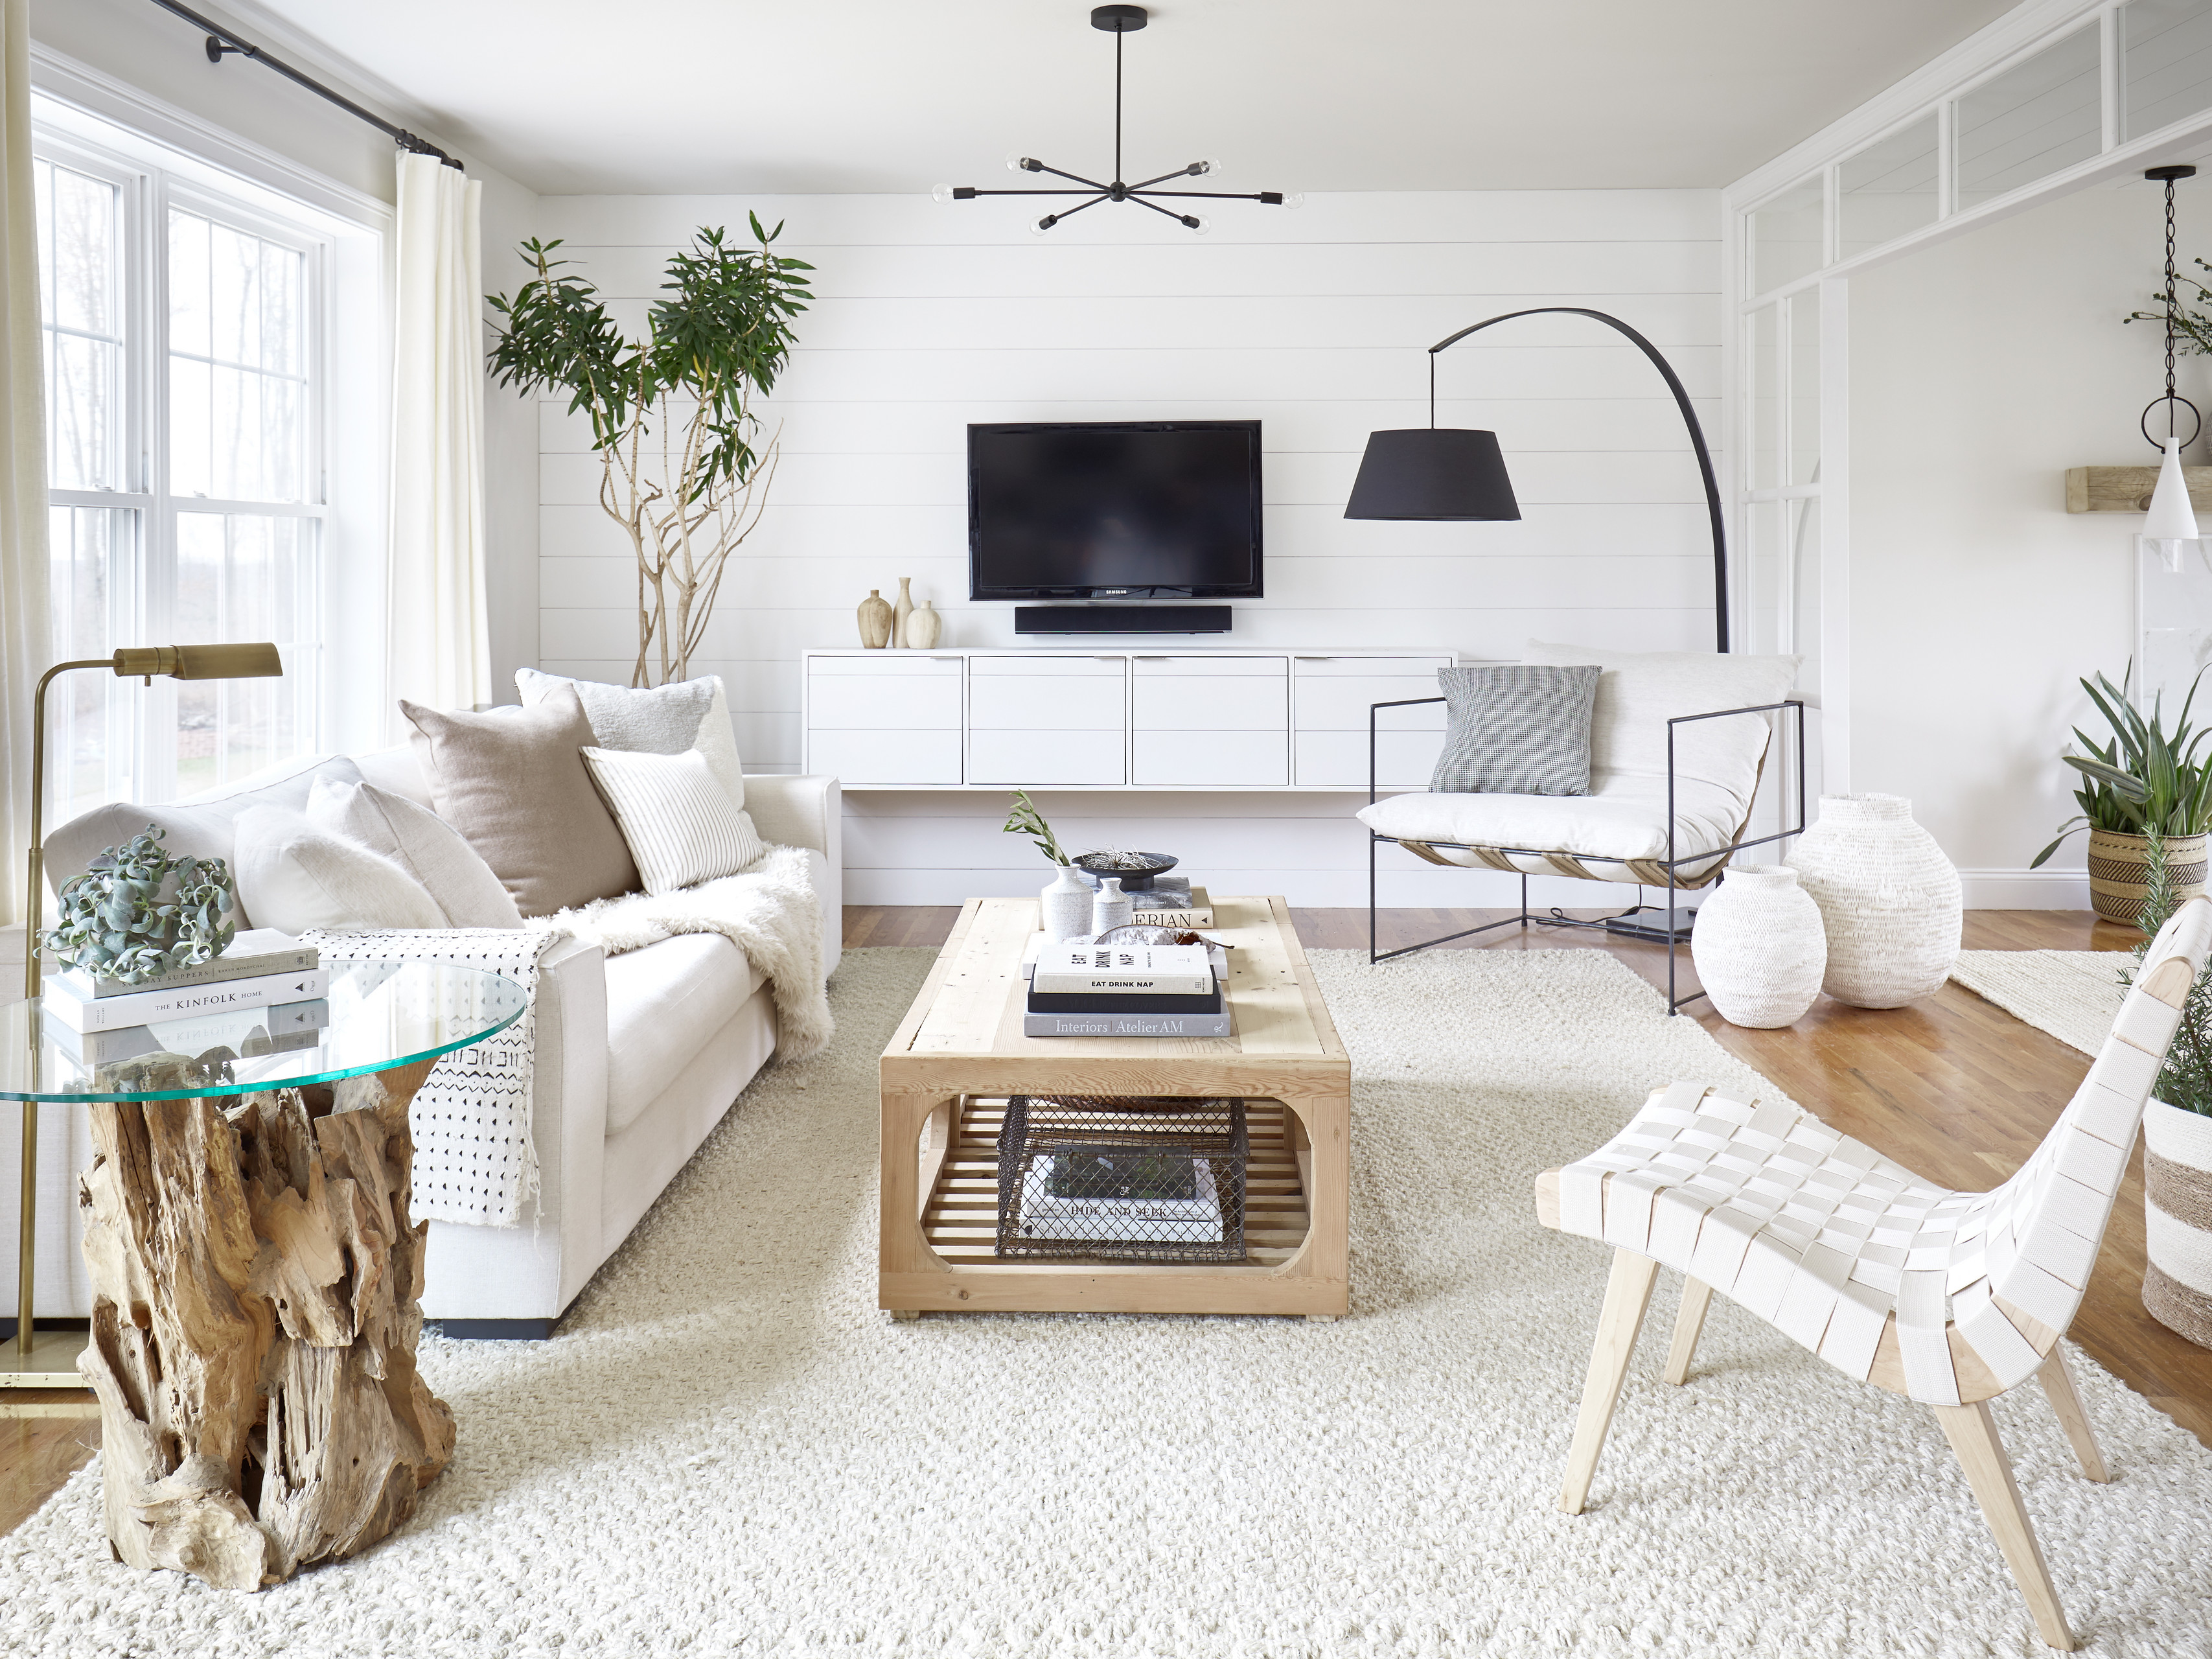 9 Beautiful Small Living Room Pictures & Ideas October 9  Houzz